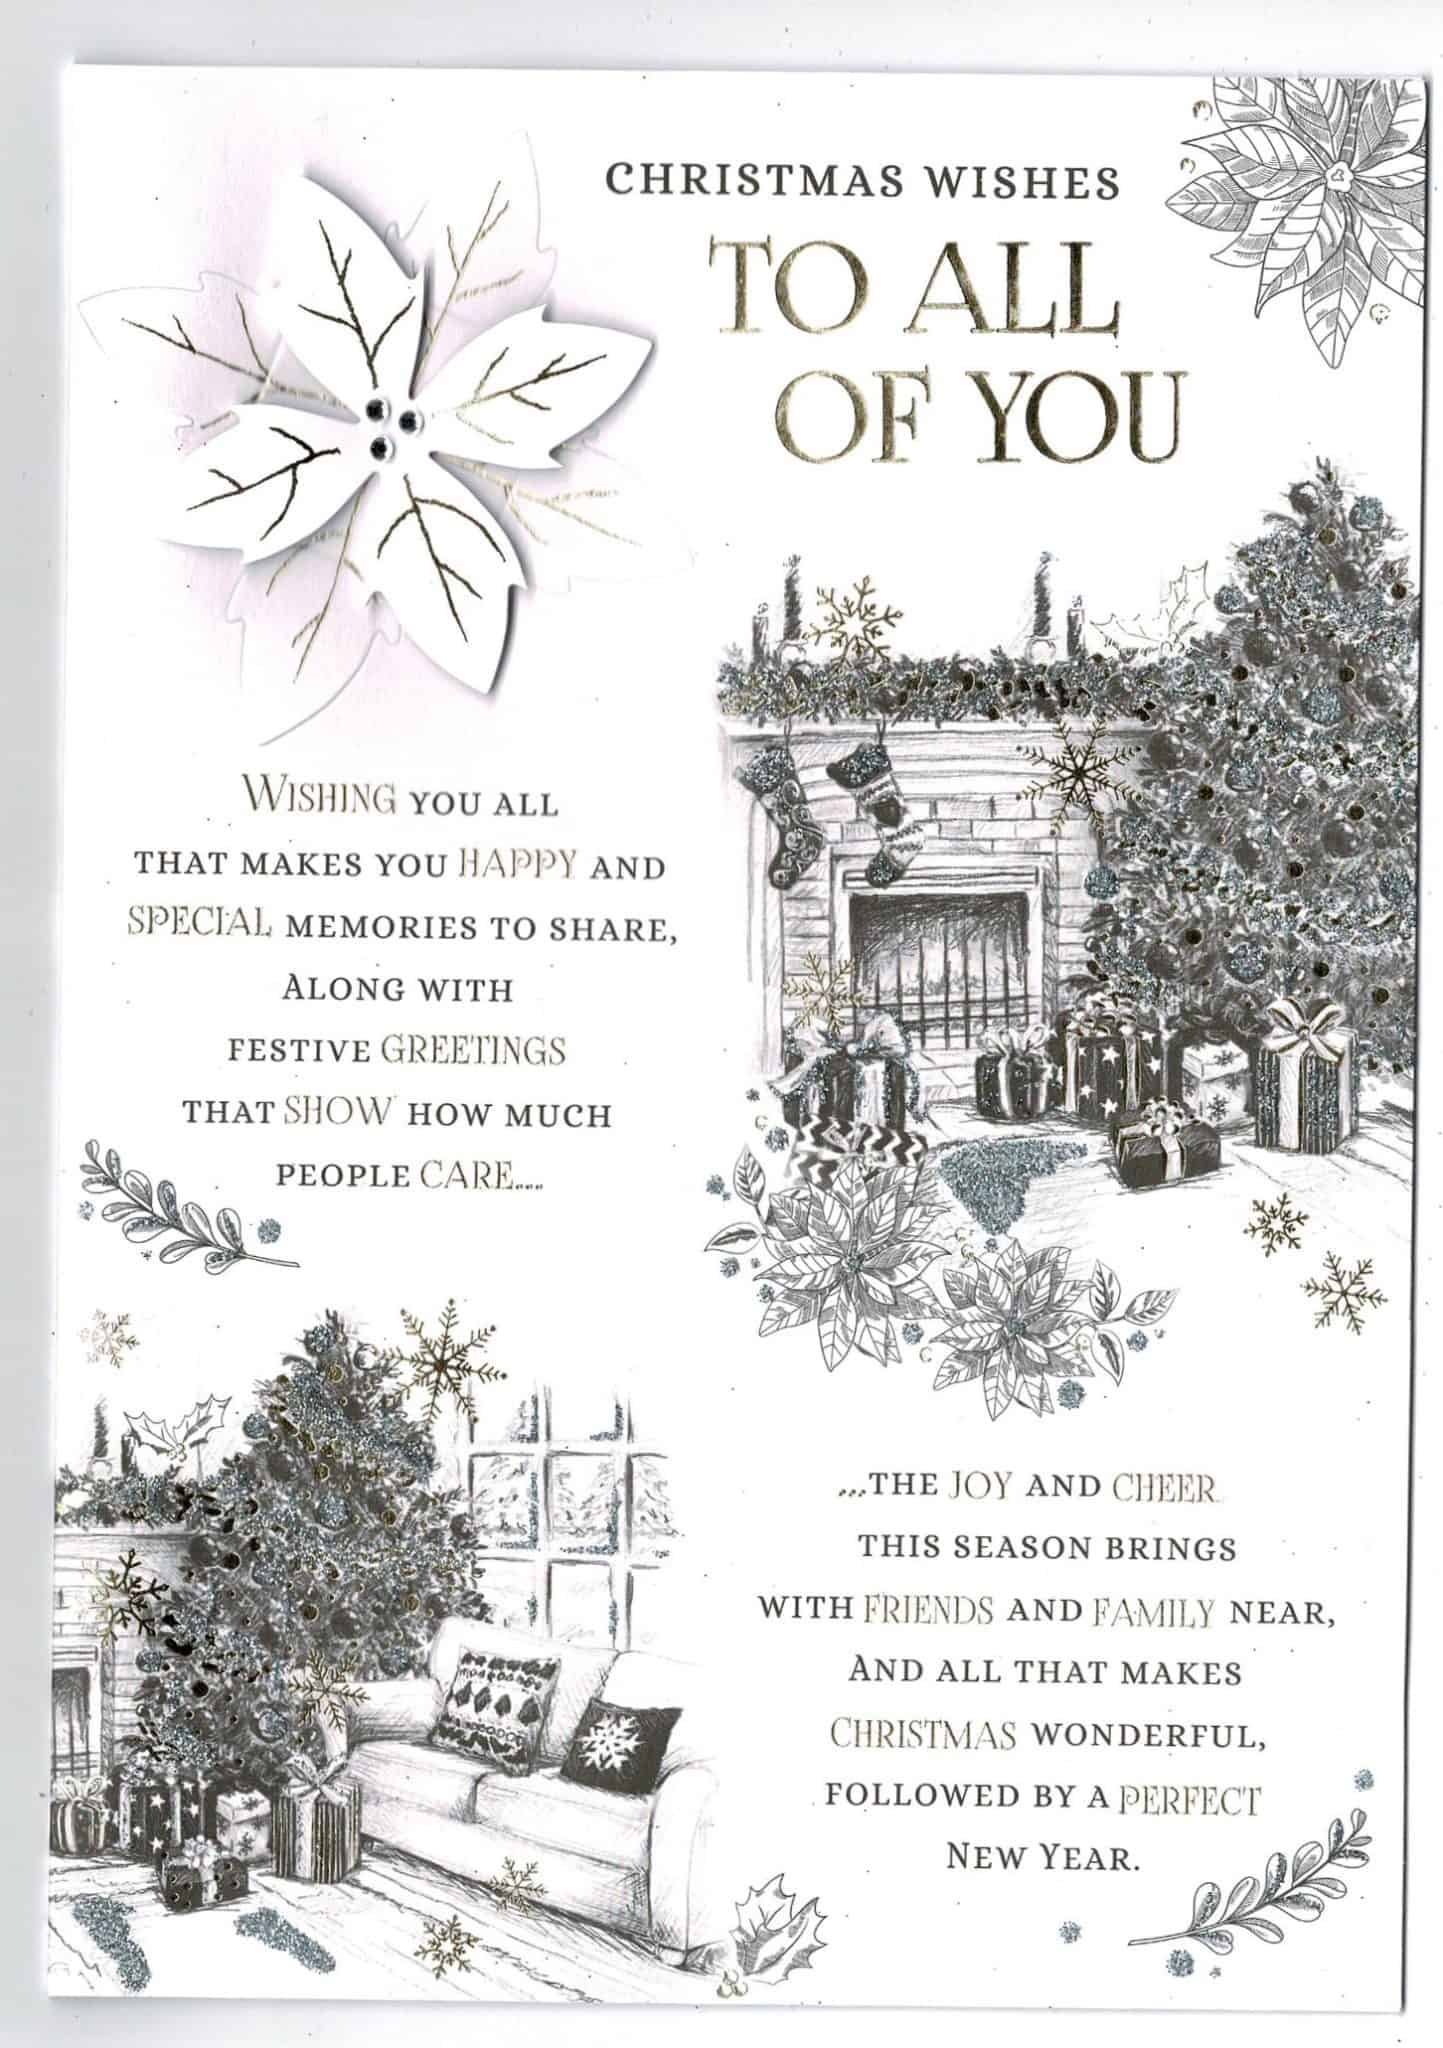 2019 White House Christmas Card.To All Of You Christmas Card Classic Design With Sentiment Verse Large Design 17 Cm X 25 Cm